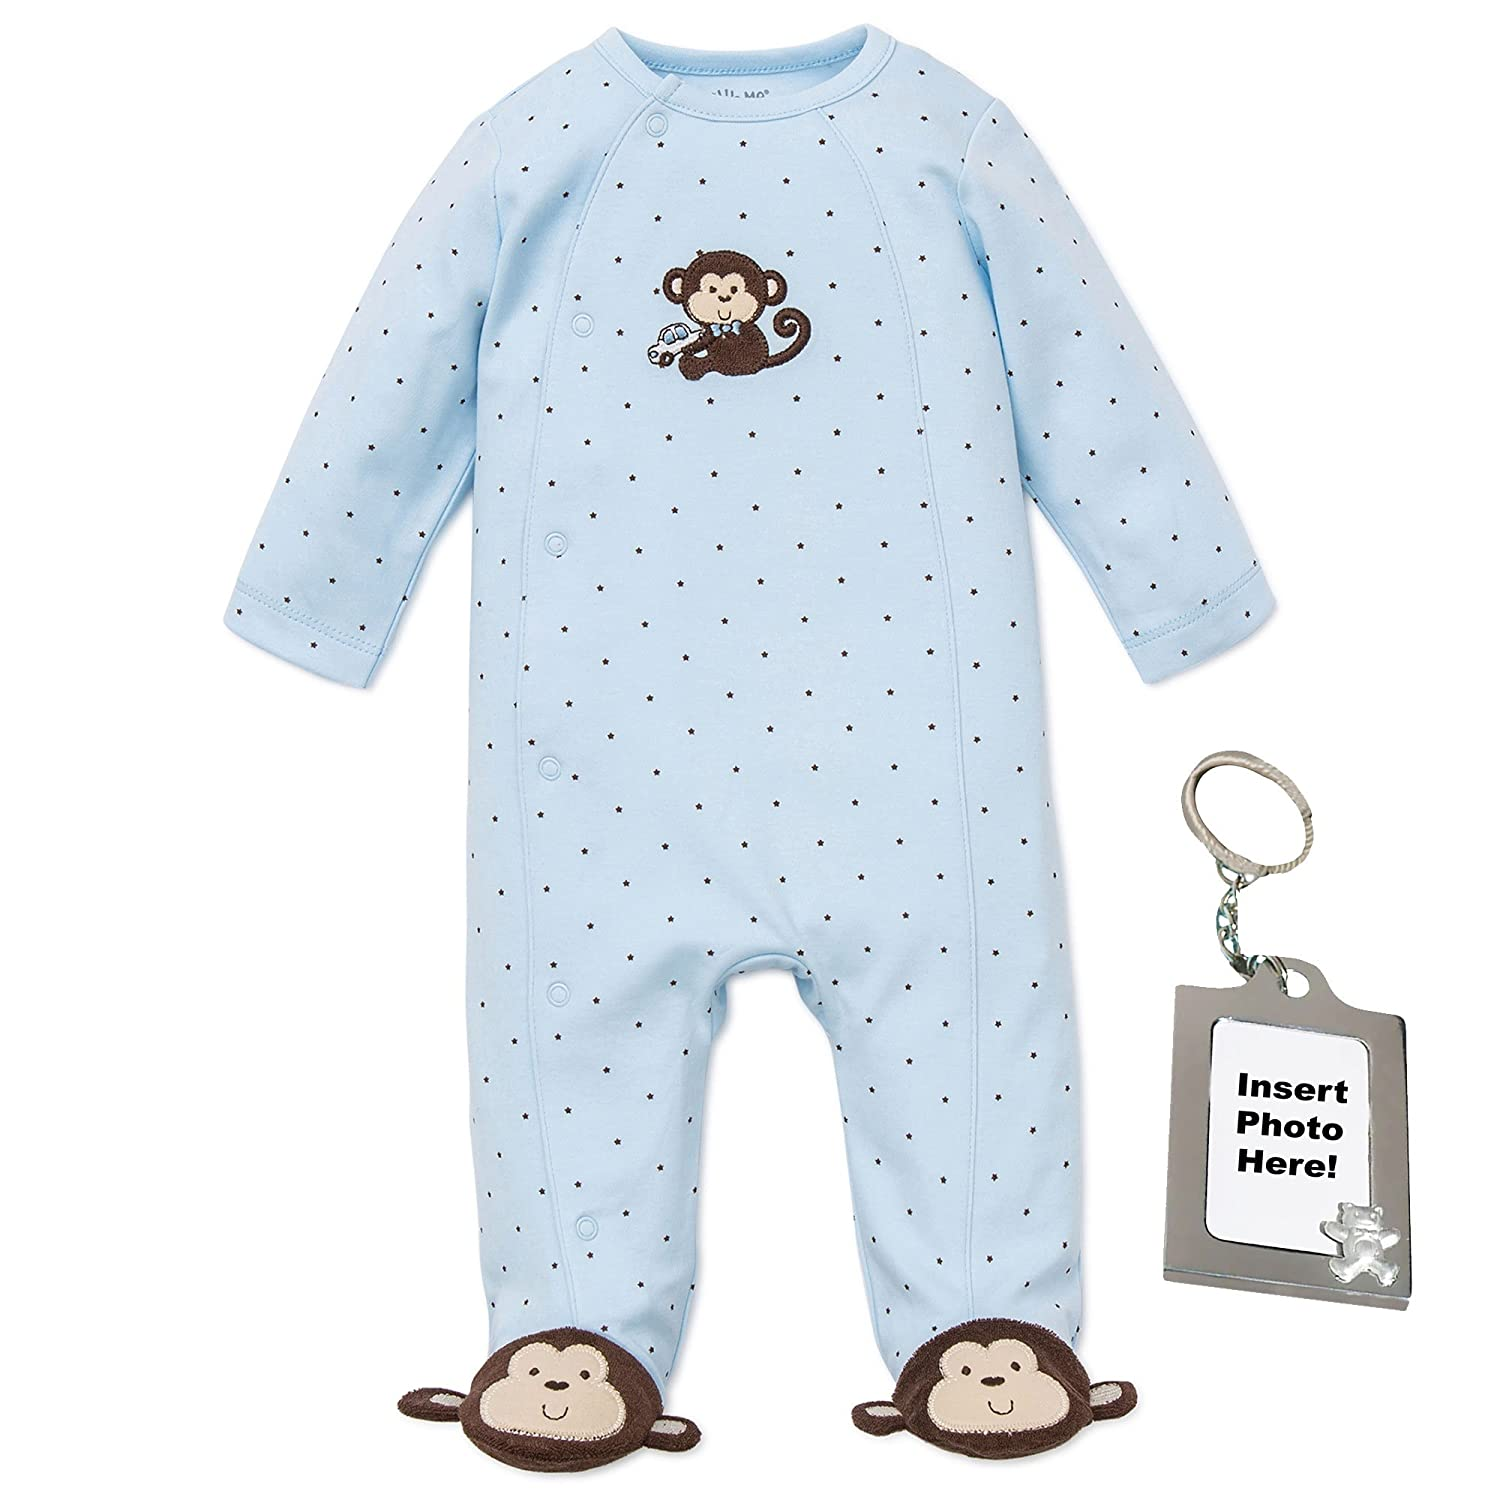 Amazon.com  Little Me Footie Baby Boy Footed Pajamas Sleeper and Tether  Blue Monkey  Baby 972a27e48